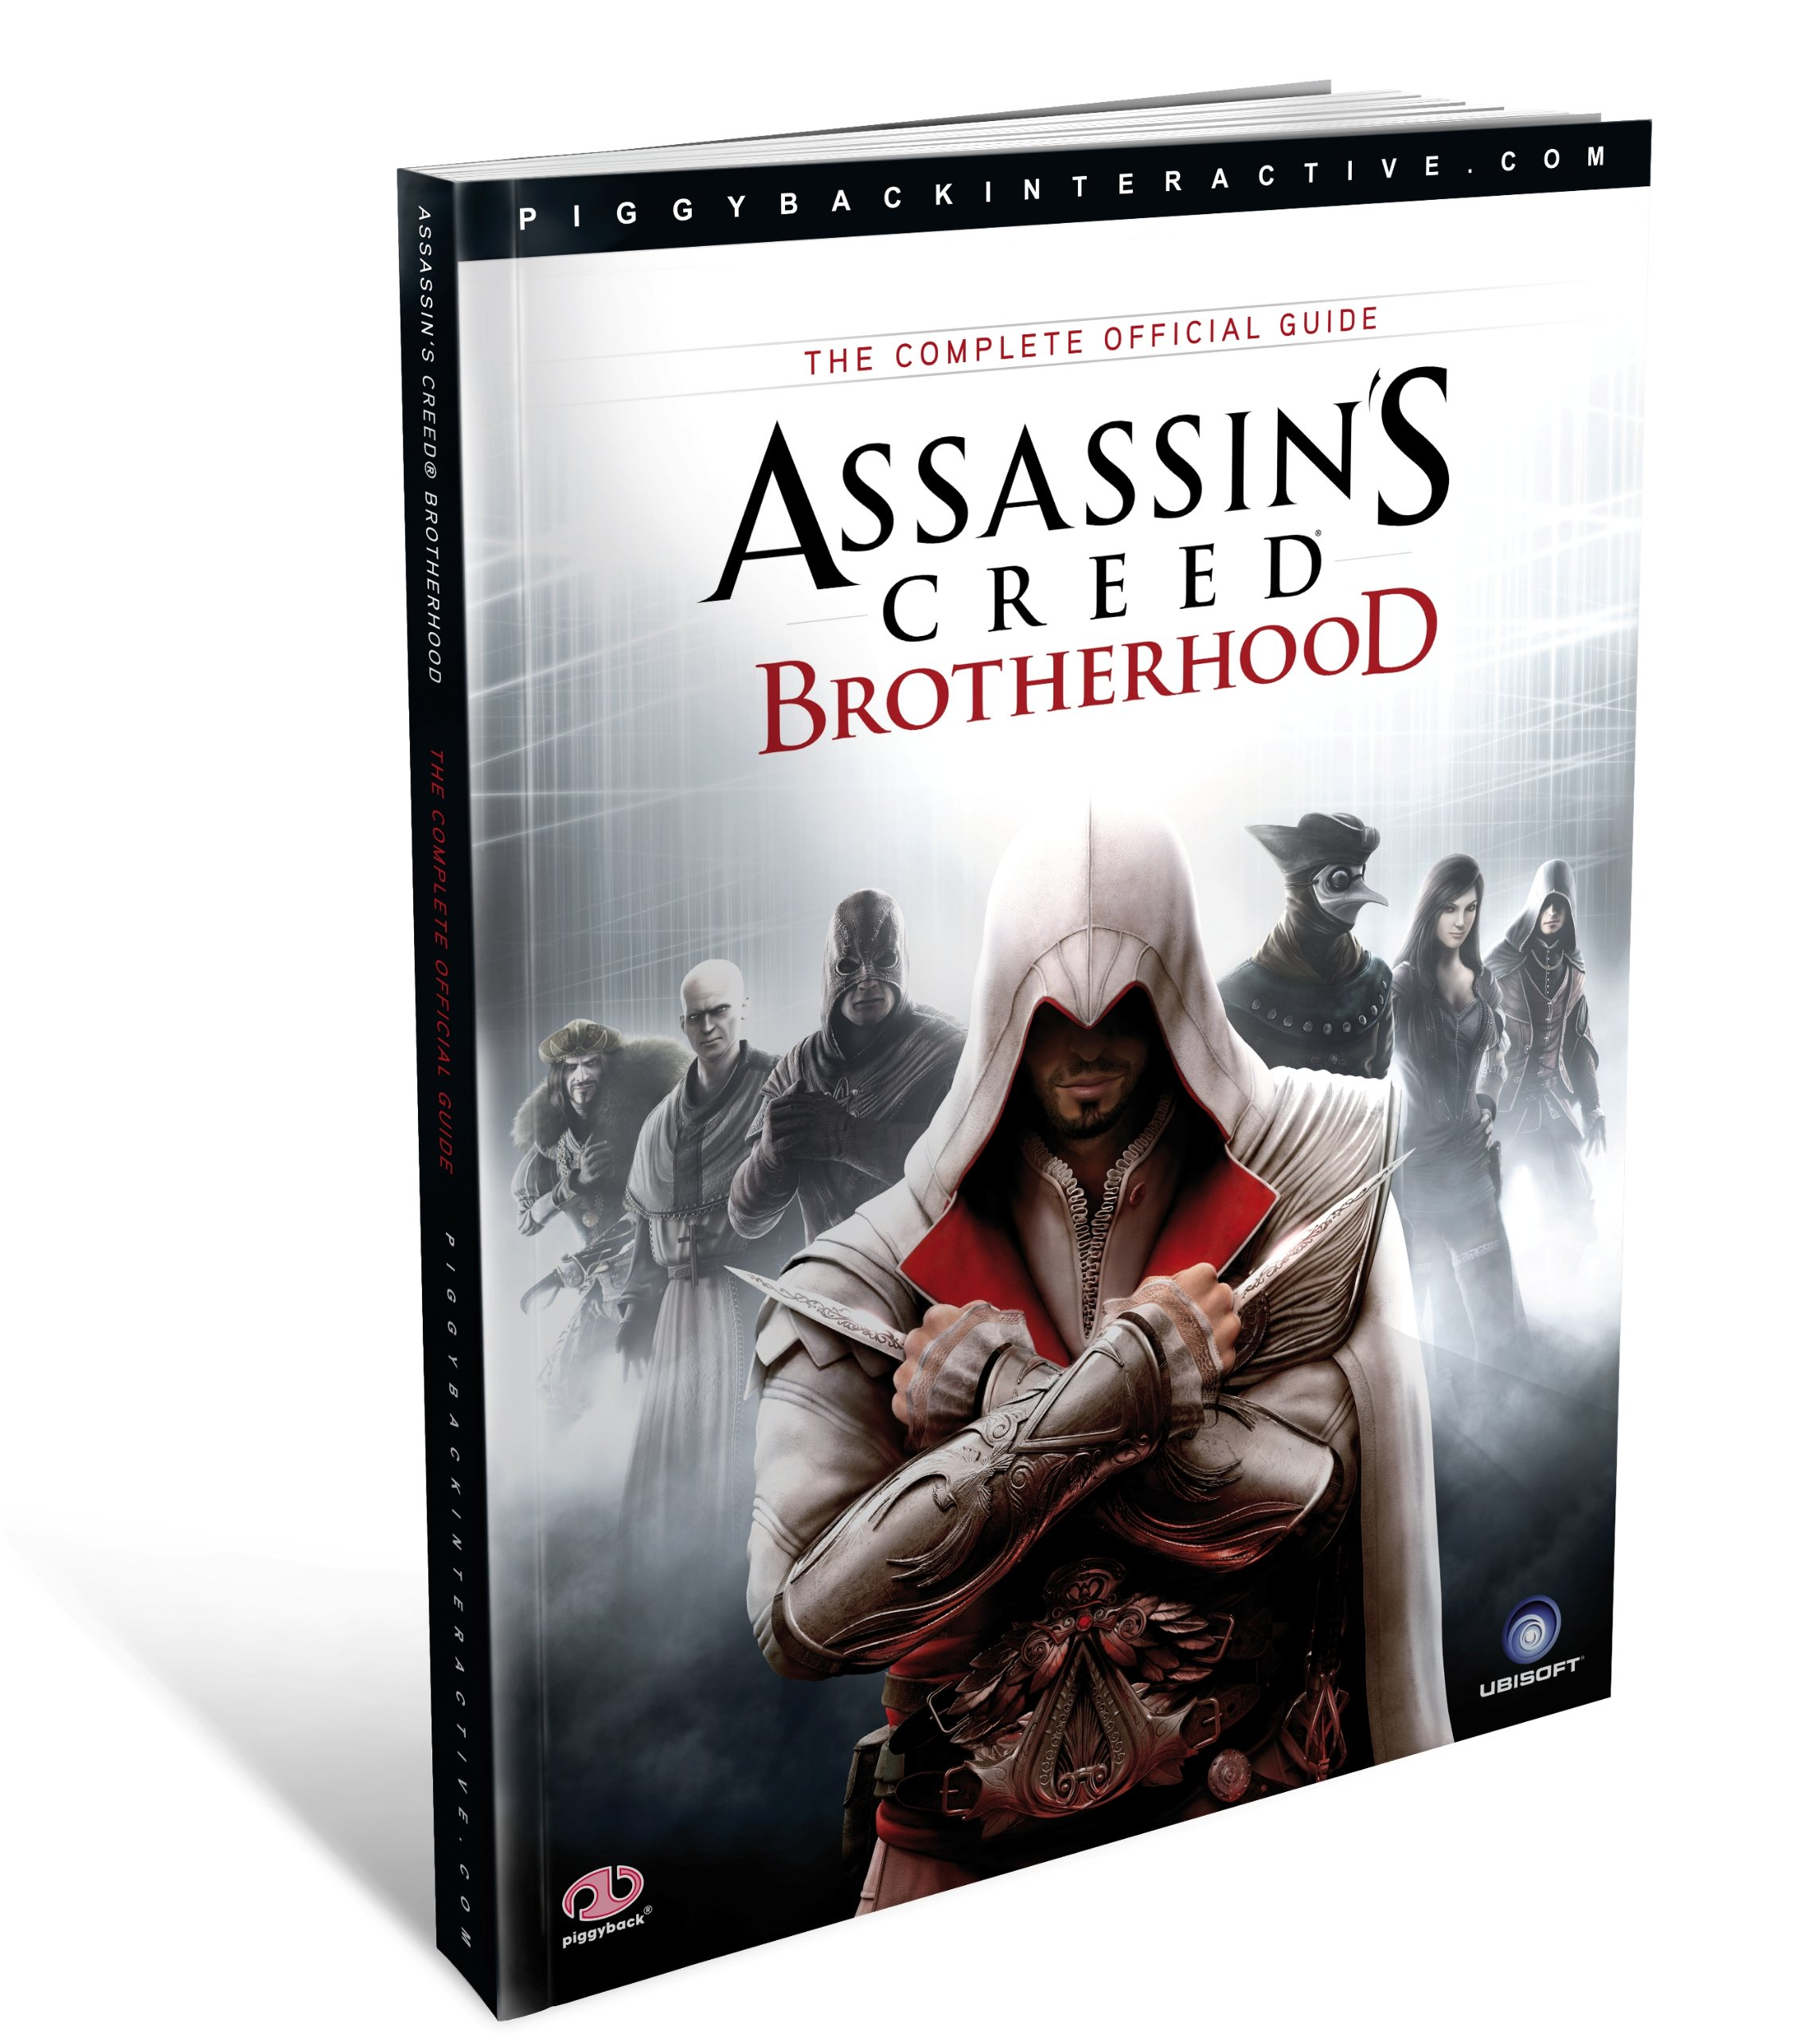 Assassins creed brotherhood investment guide sonrisa investments definition